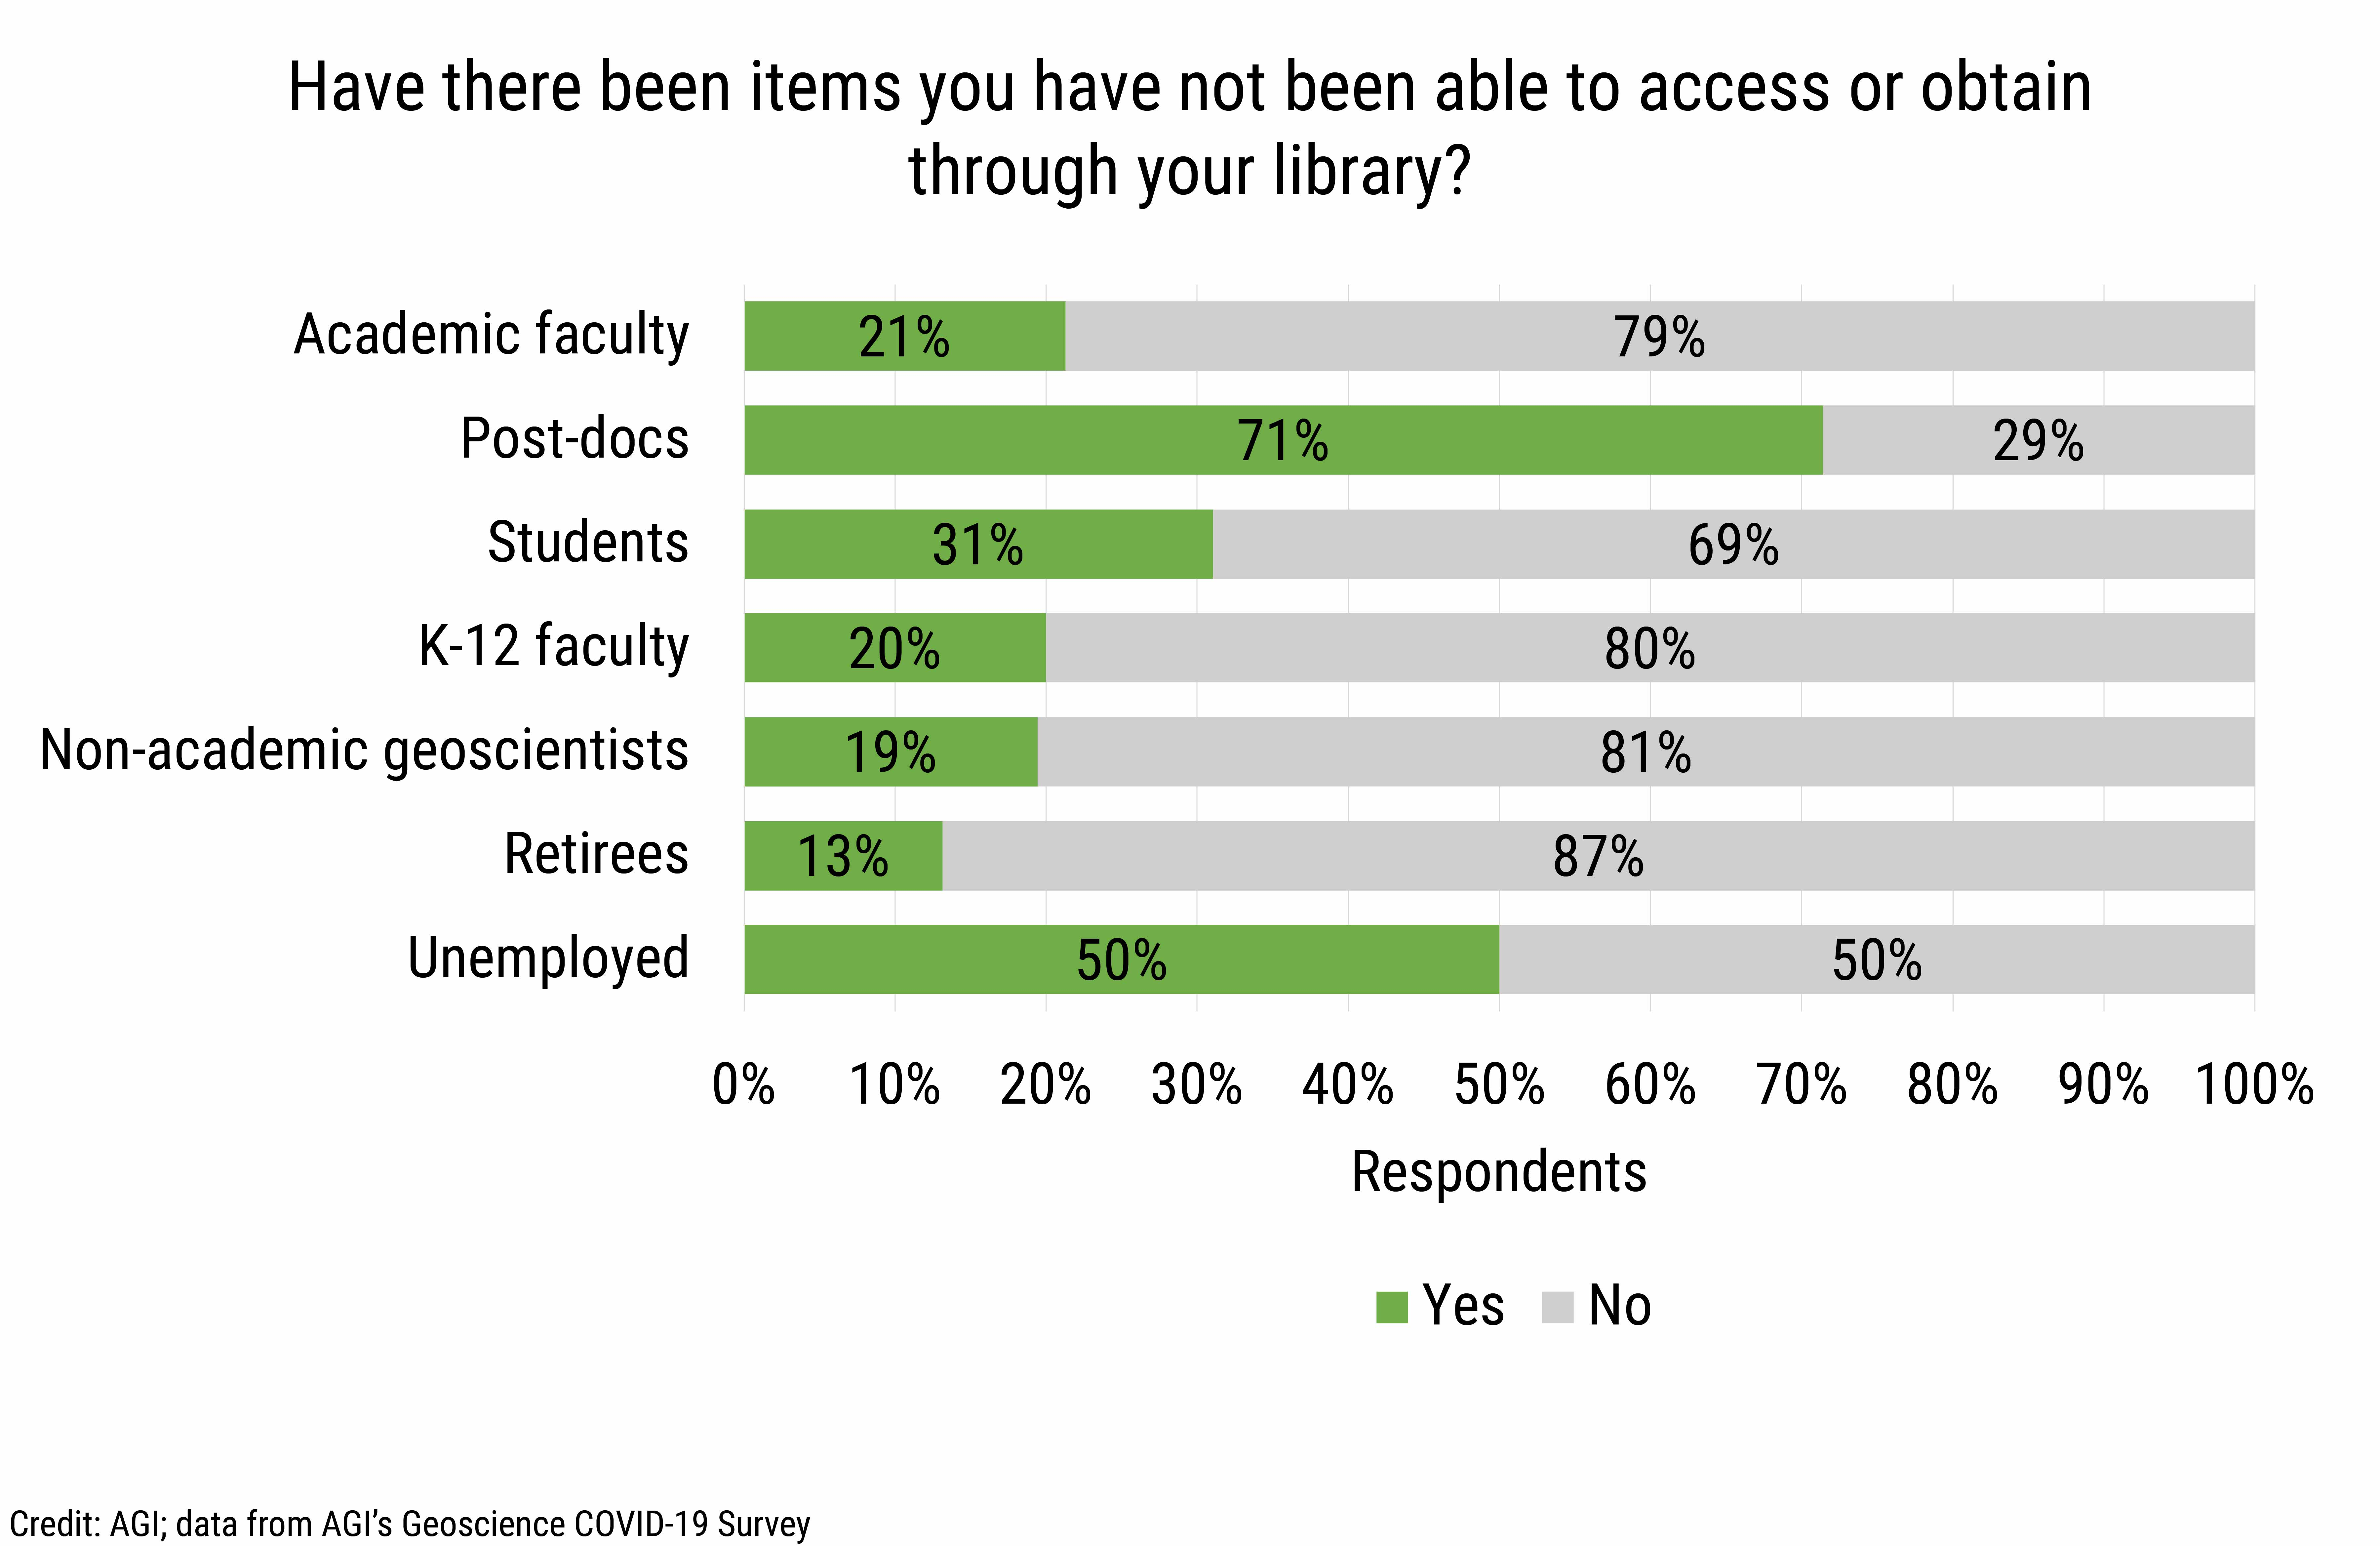 DB_2020-026 chart 07: Lack of access to items through library (Credit: AGI; data from AGI's Geoscience COVID-19 Survey)